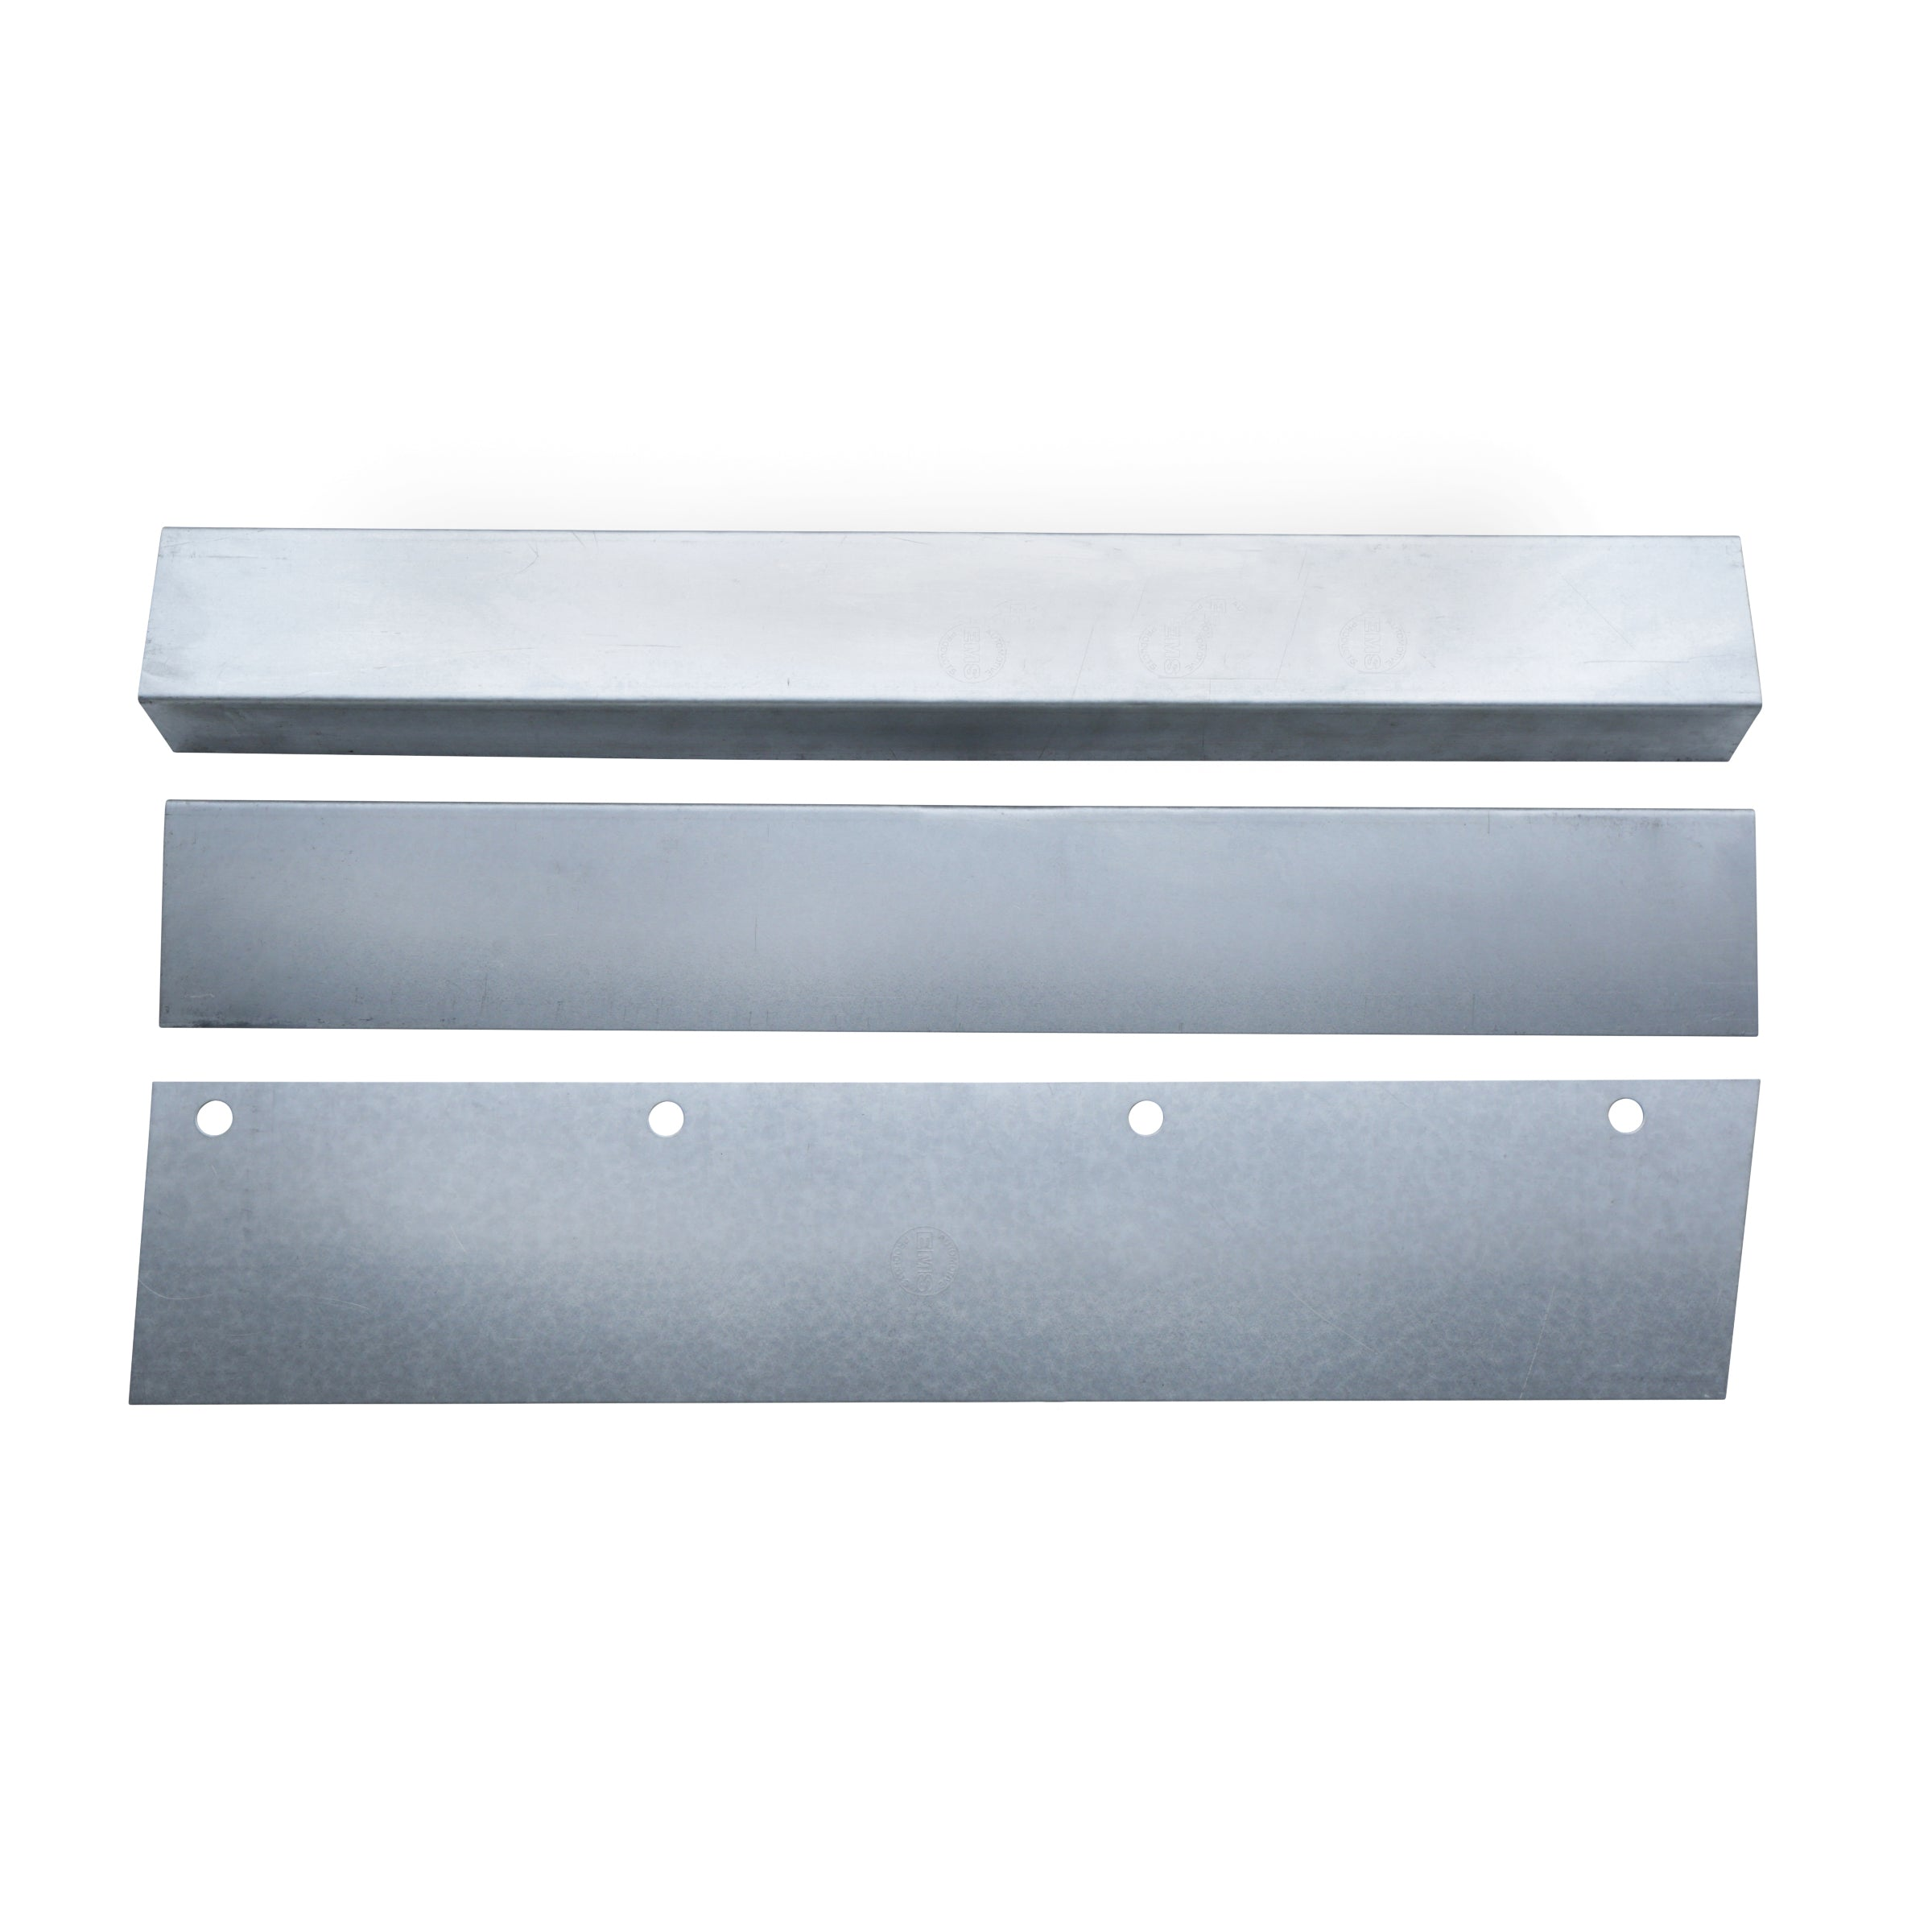 Rocker Panel Box (Rear, Left) • 1941-48 Ford & Mercury Fordor, Business Coupe, & Sedan Delivery